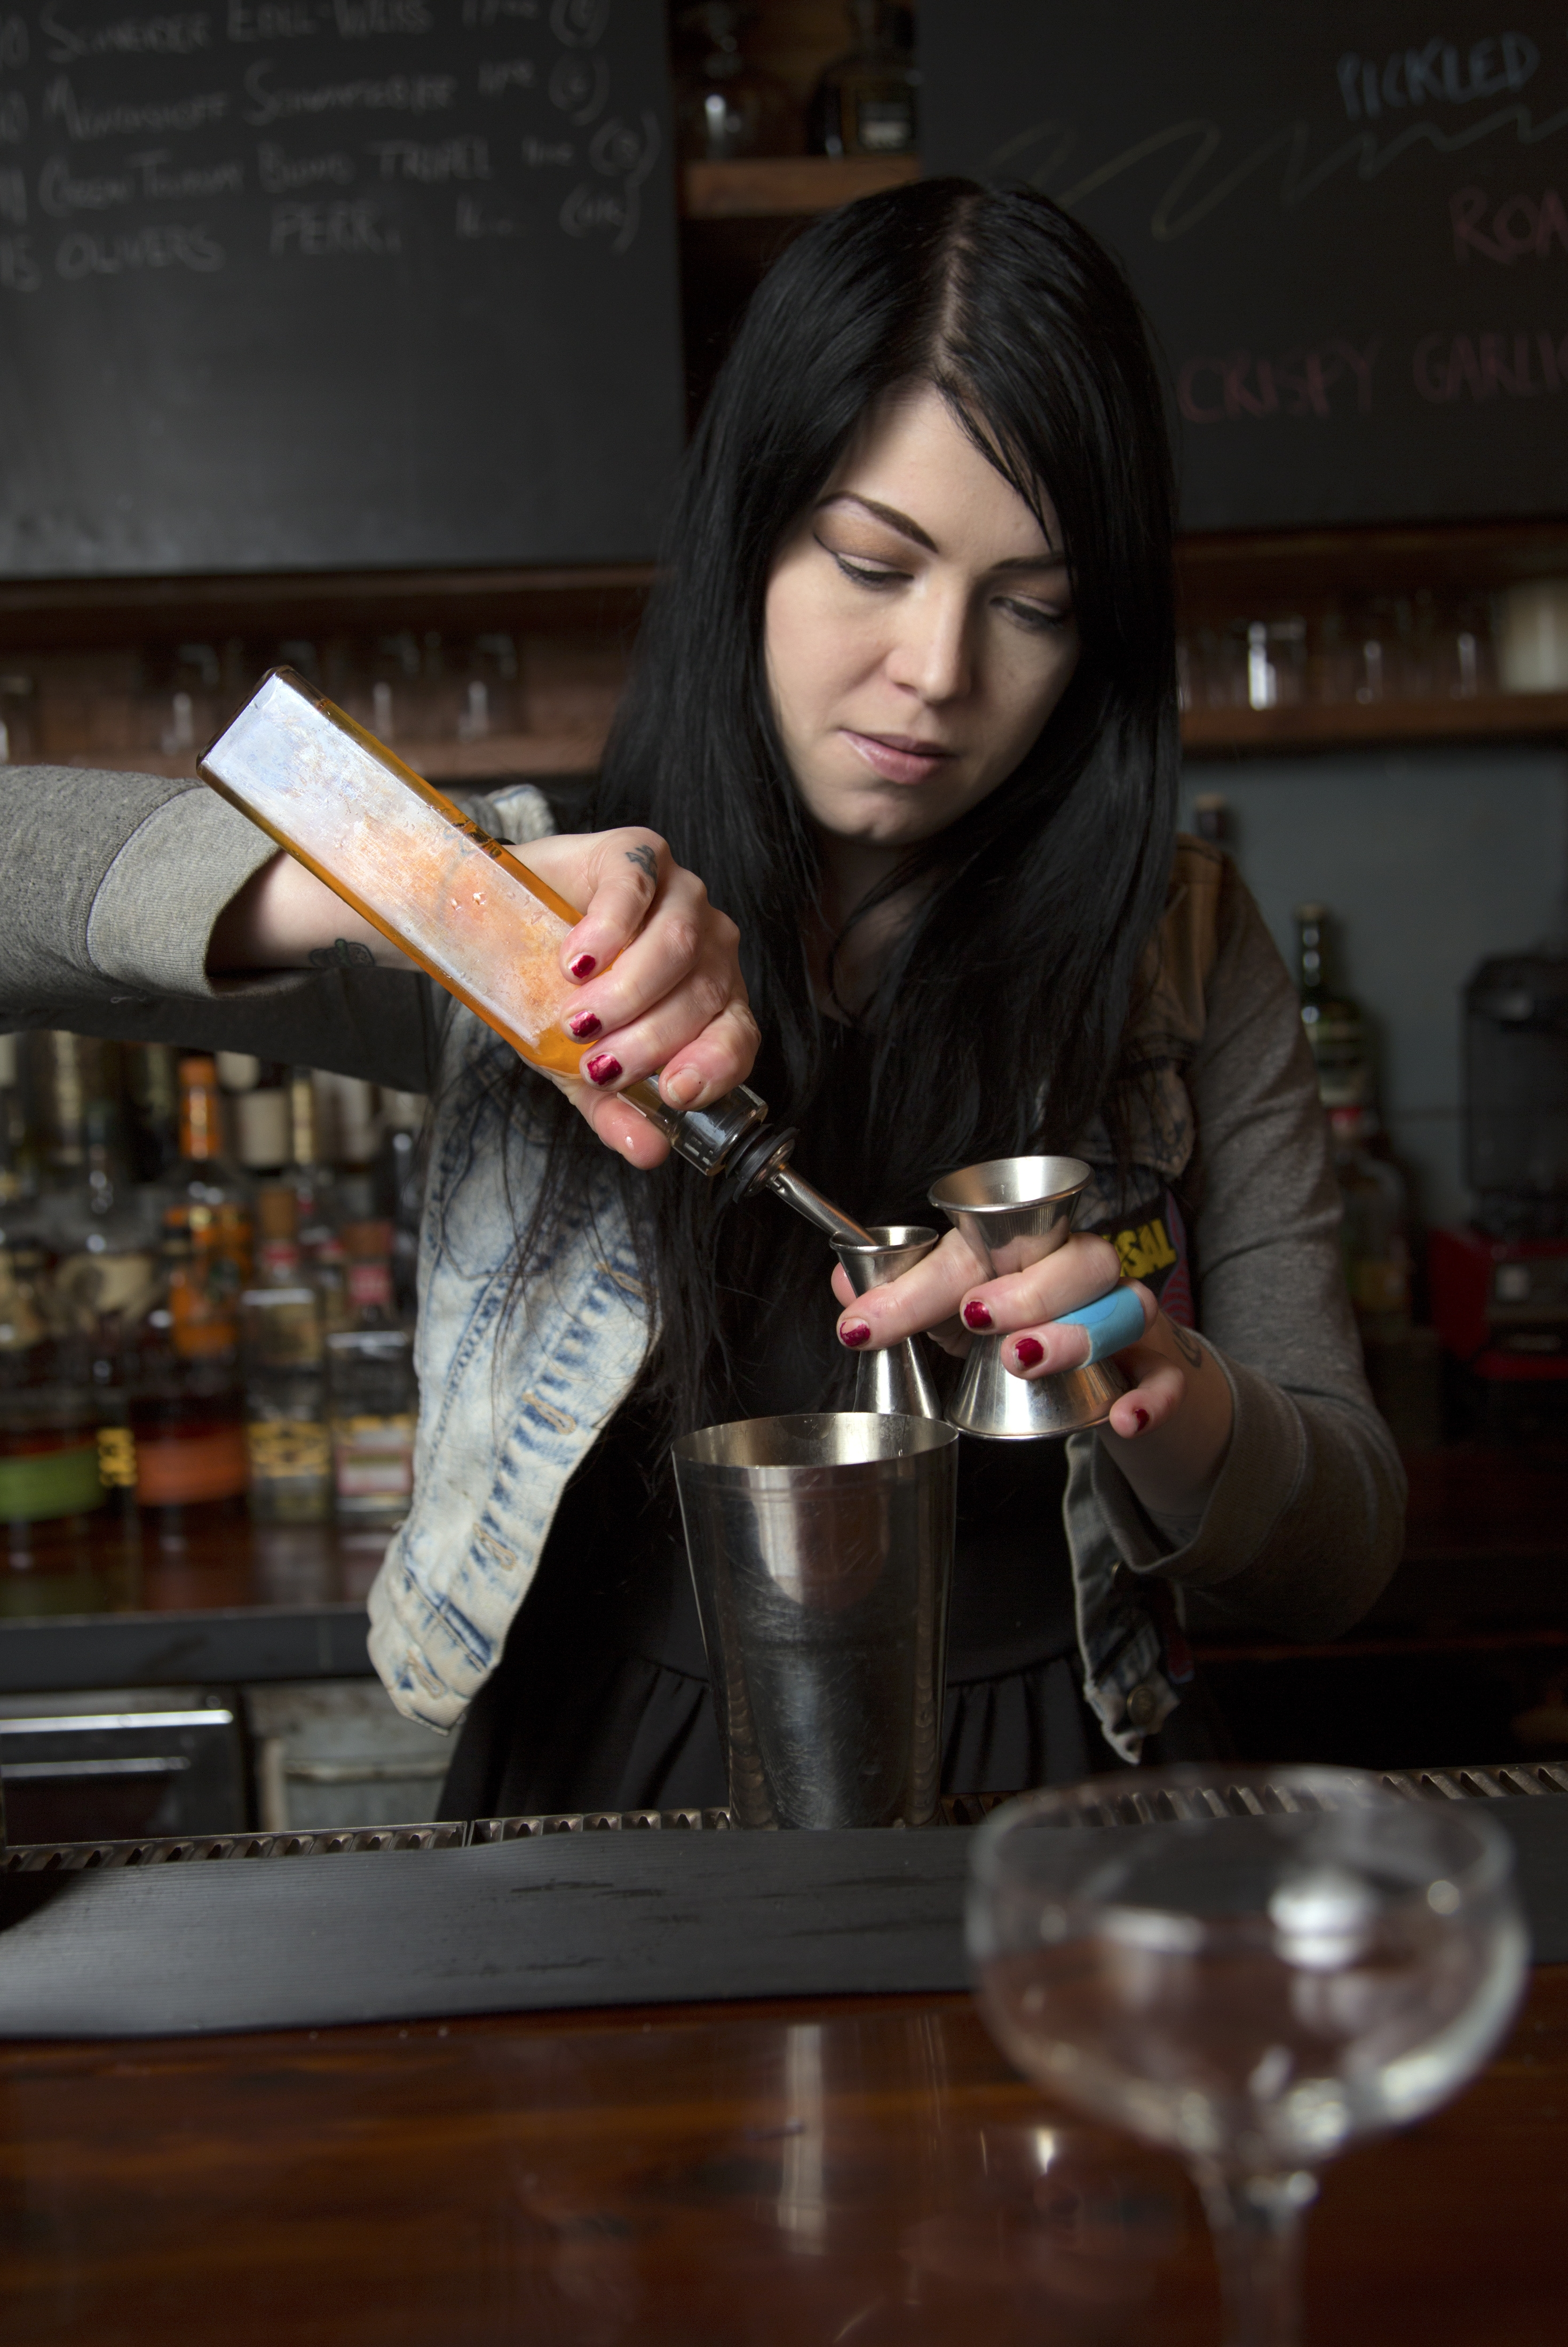 """Tonia Guffey head bartender at Dram, makes her pleasingly complex """"Snowbirds and Townies""""  cocktail in New York, Nov. 25, 2013. The cocktail is one of seven new concoctions created by mixologists for the holidays. (Tony Cenicola/The New York Times)"""